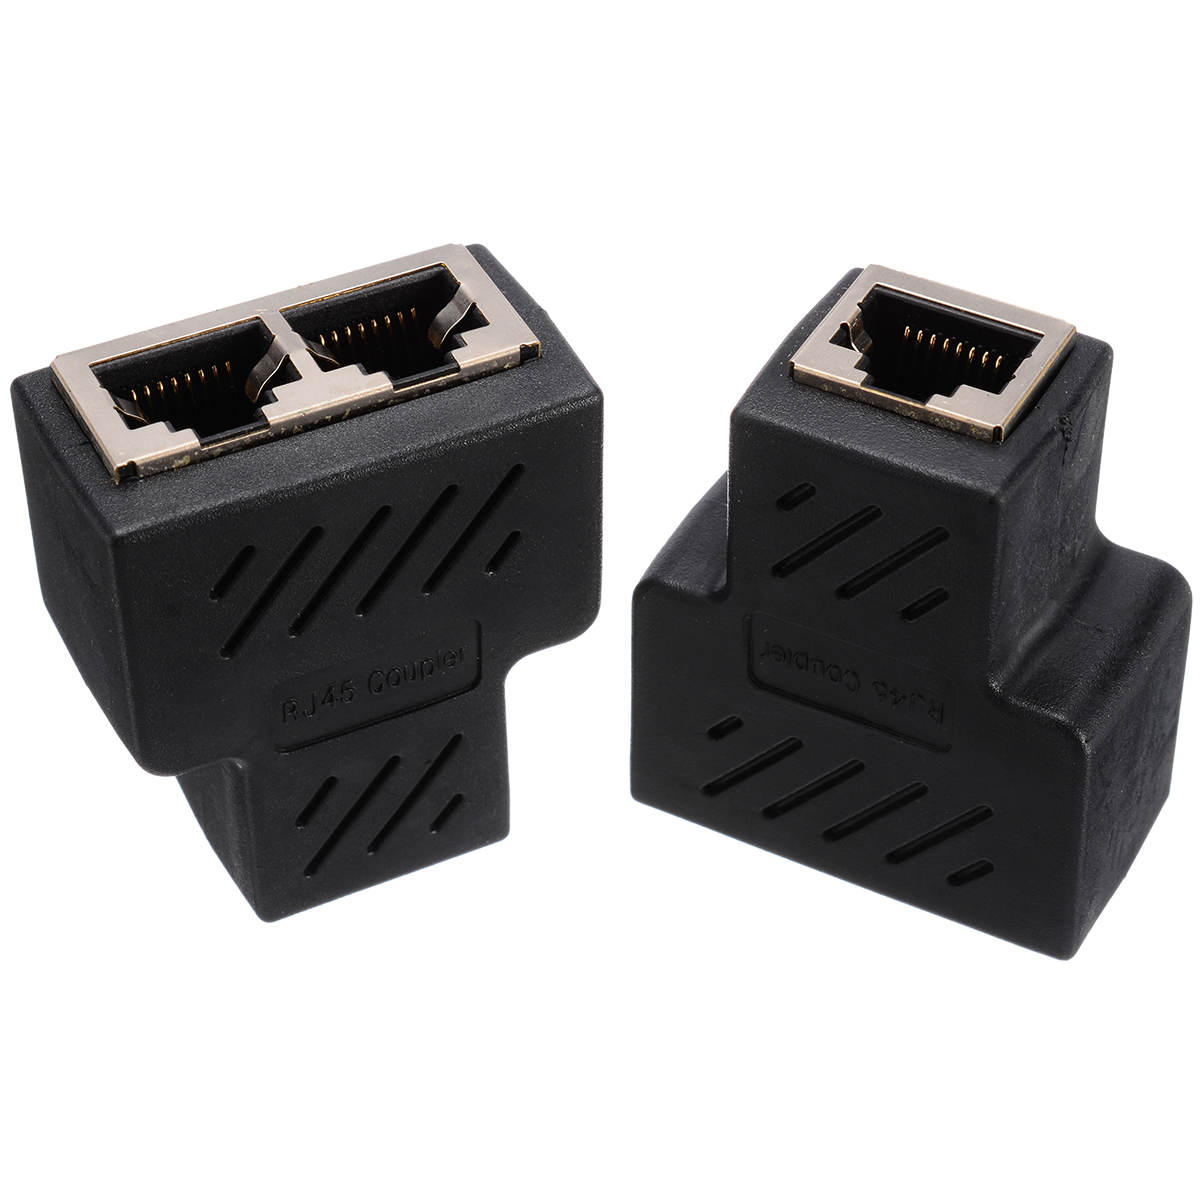 Image 4 - 1 Pair RJ45 Female Splitter Adapter RJ45 Coupler Female Connector 1 To 2 Female LAN Ethernet Network Coupler Port Extender-in Computer Cables & Connectors from Computer & Office